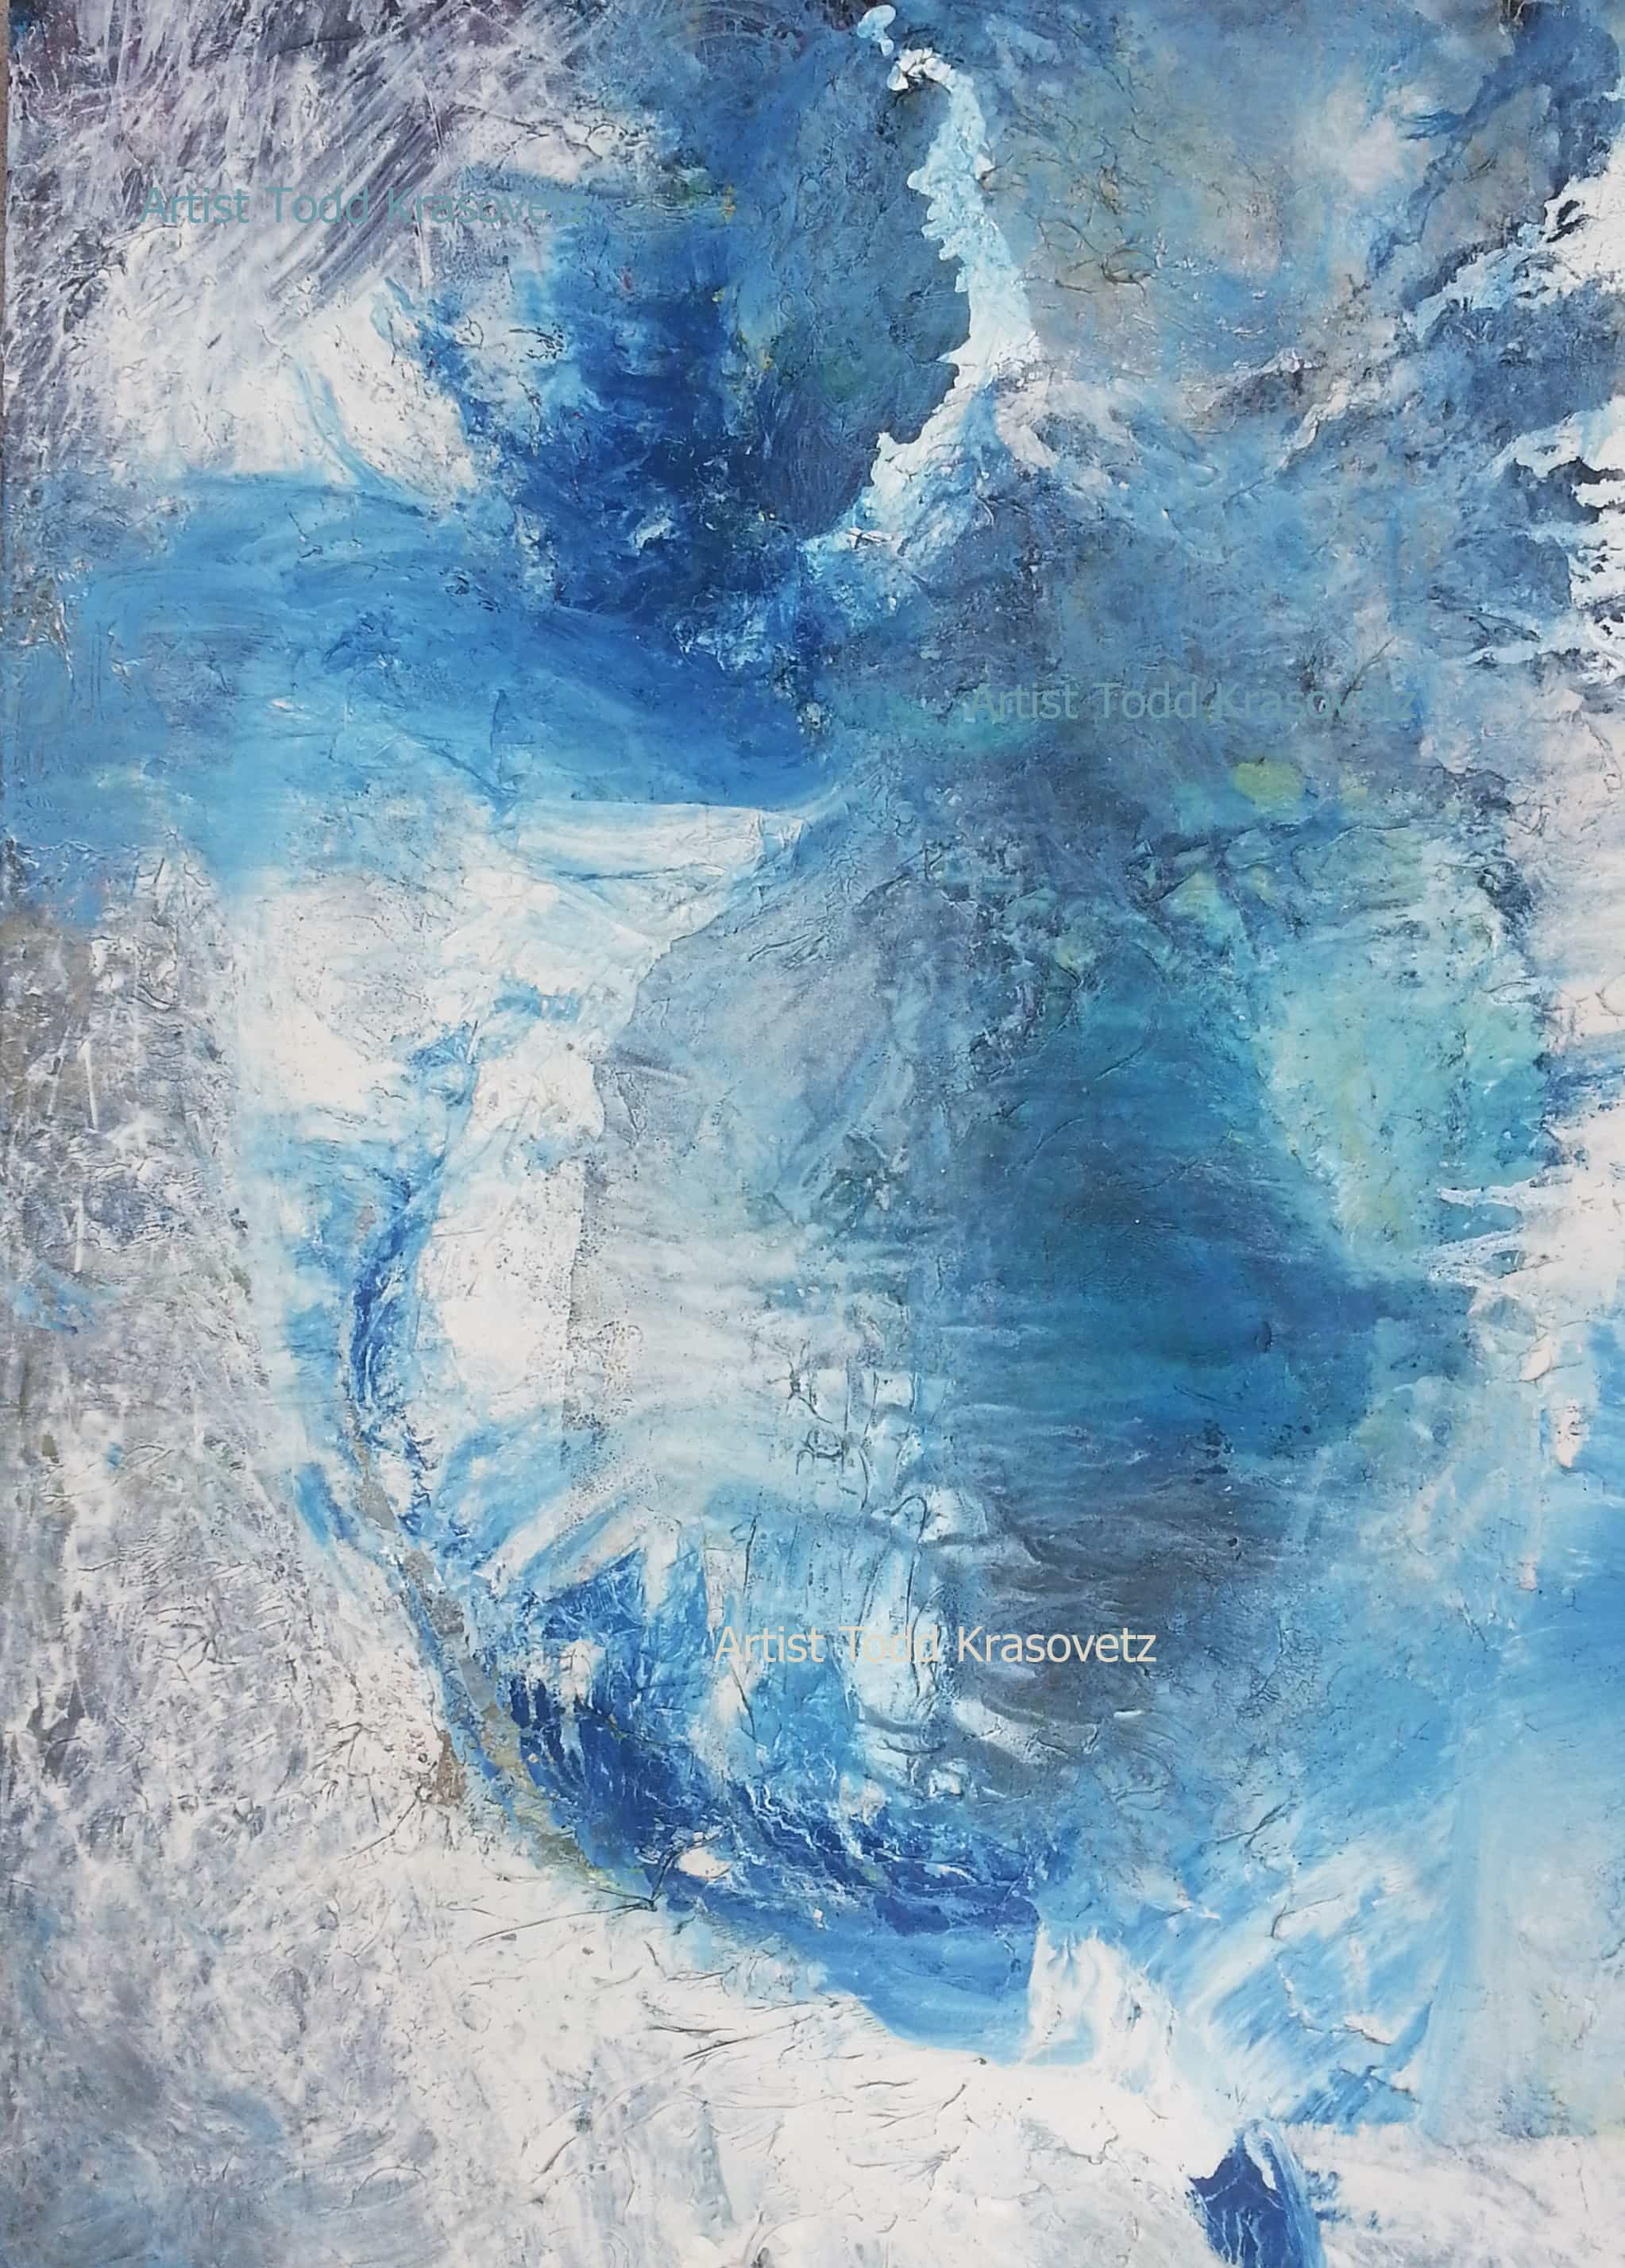 Contemporary Abstract Expressionism Oil on Canvas Size 42 x 60 inches Titled Above the Horizon Looking Down at Waves by Artist Todd Krasovetz